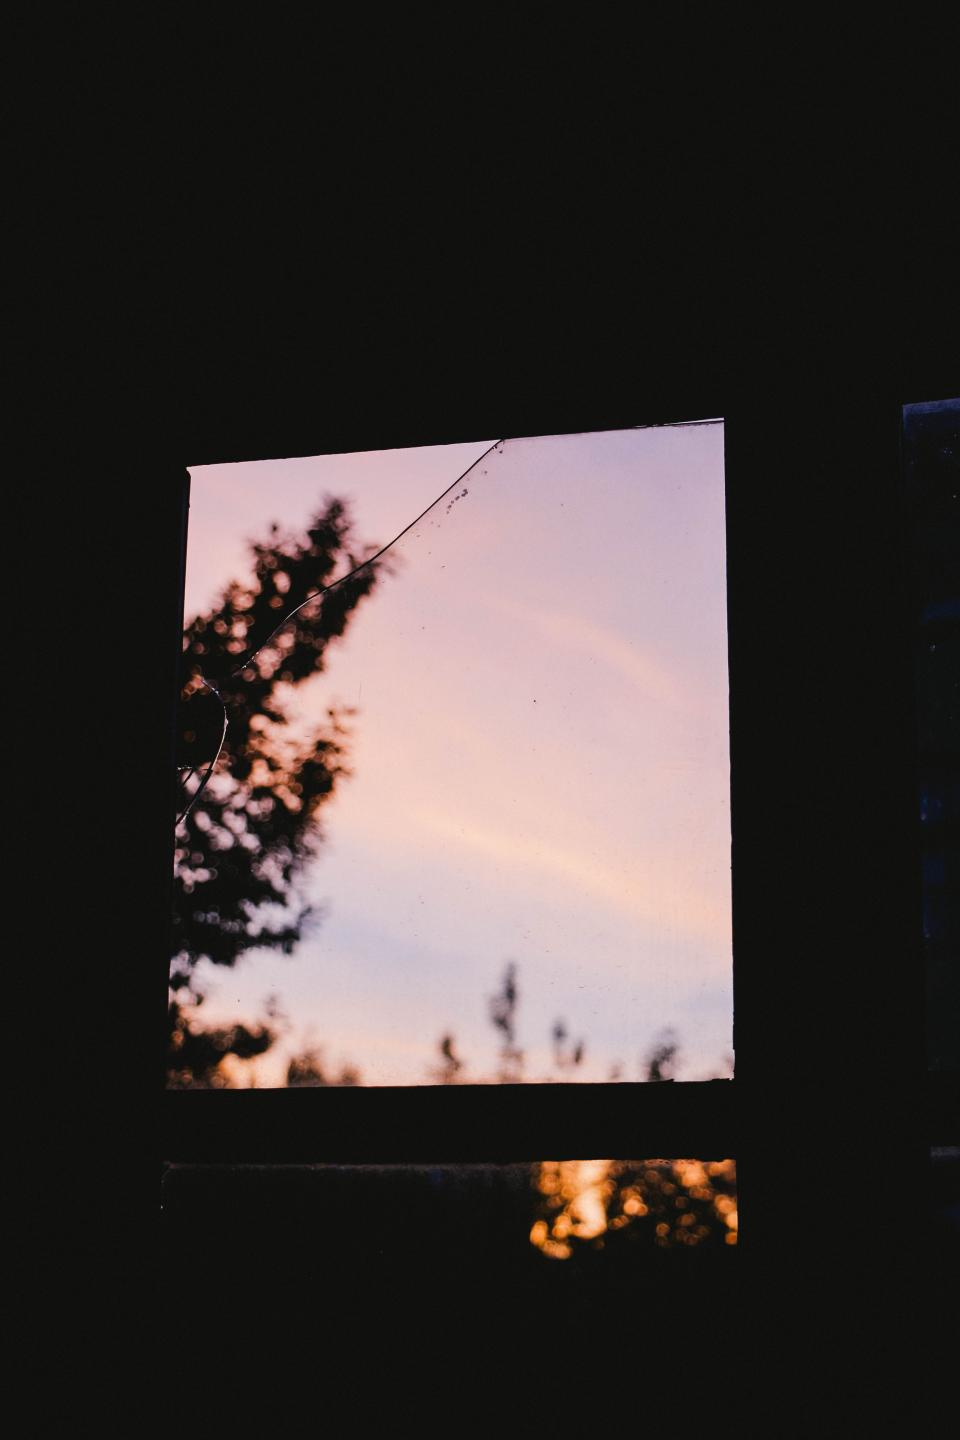 dark room window glass outside view tree bokeh sunset